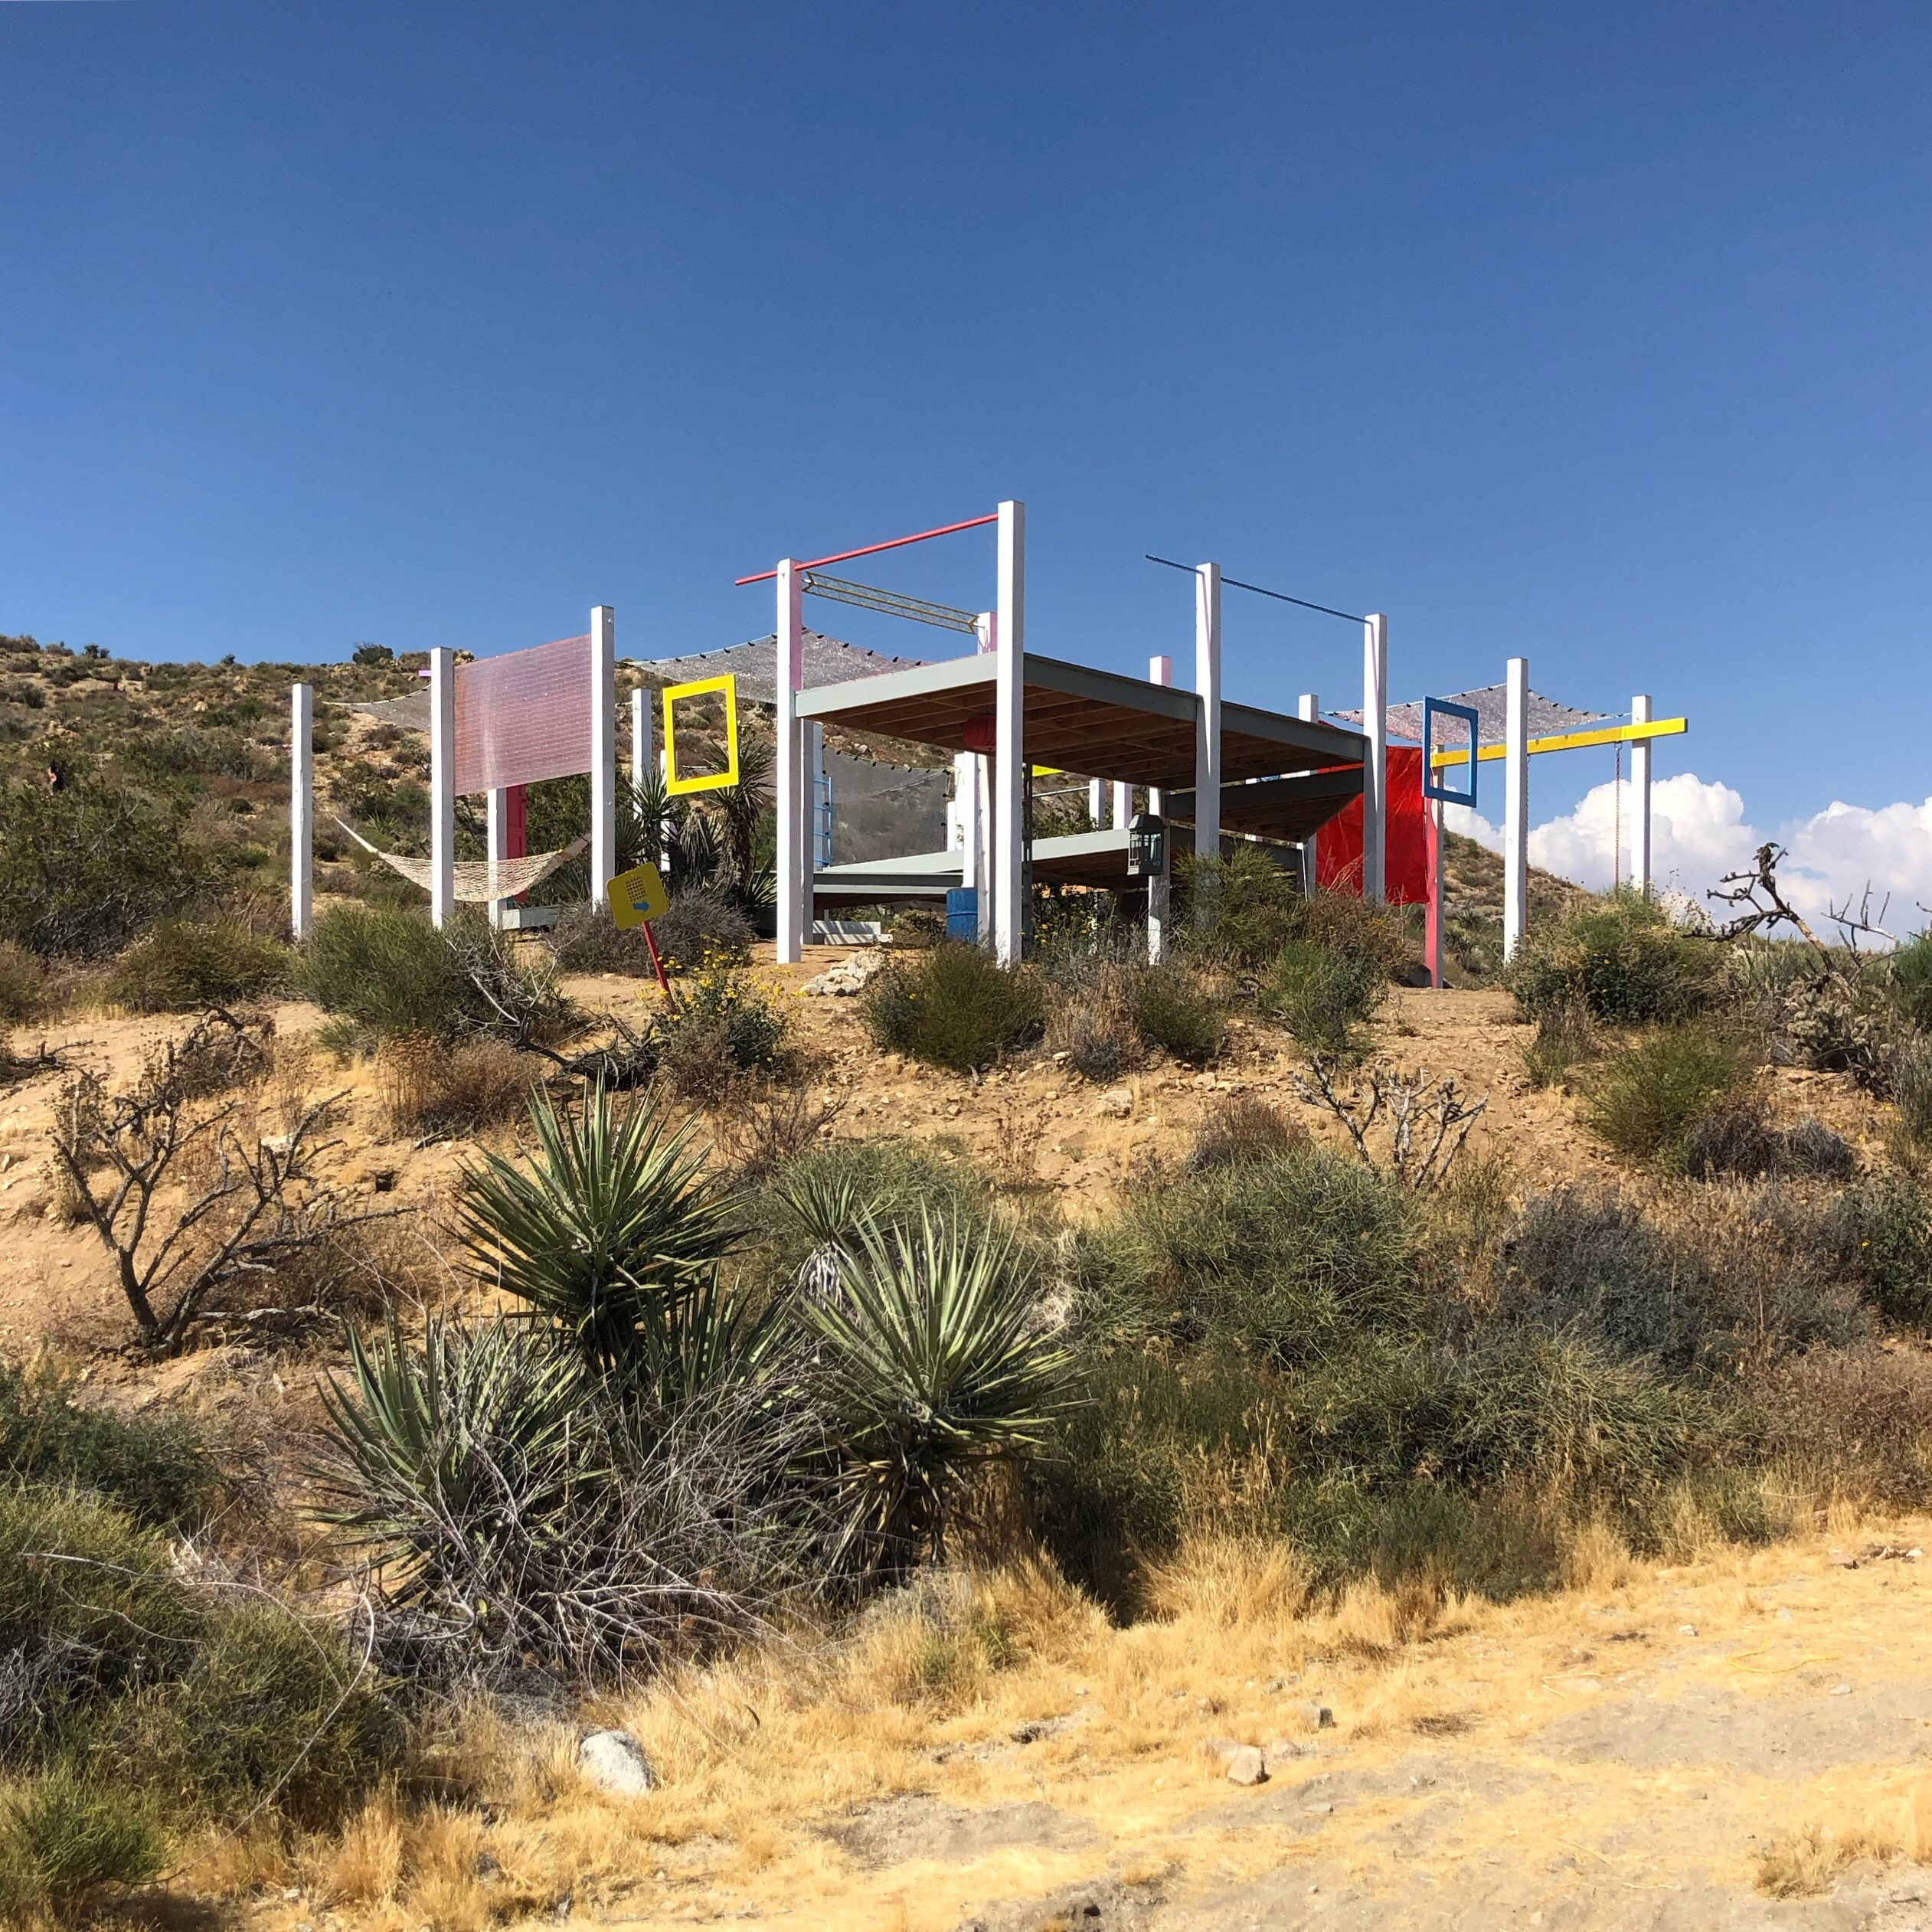 Office Kovacs with Kyle May Architect DOTS, A Camping Pavilion, Morongo Valley, California, 2019